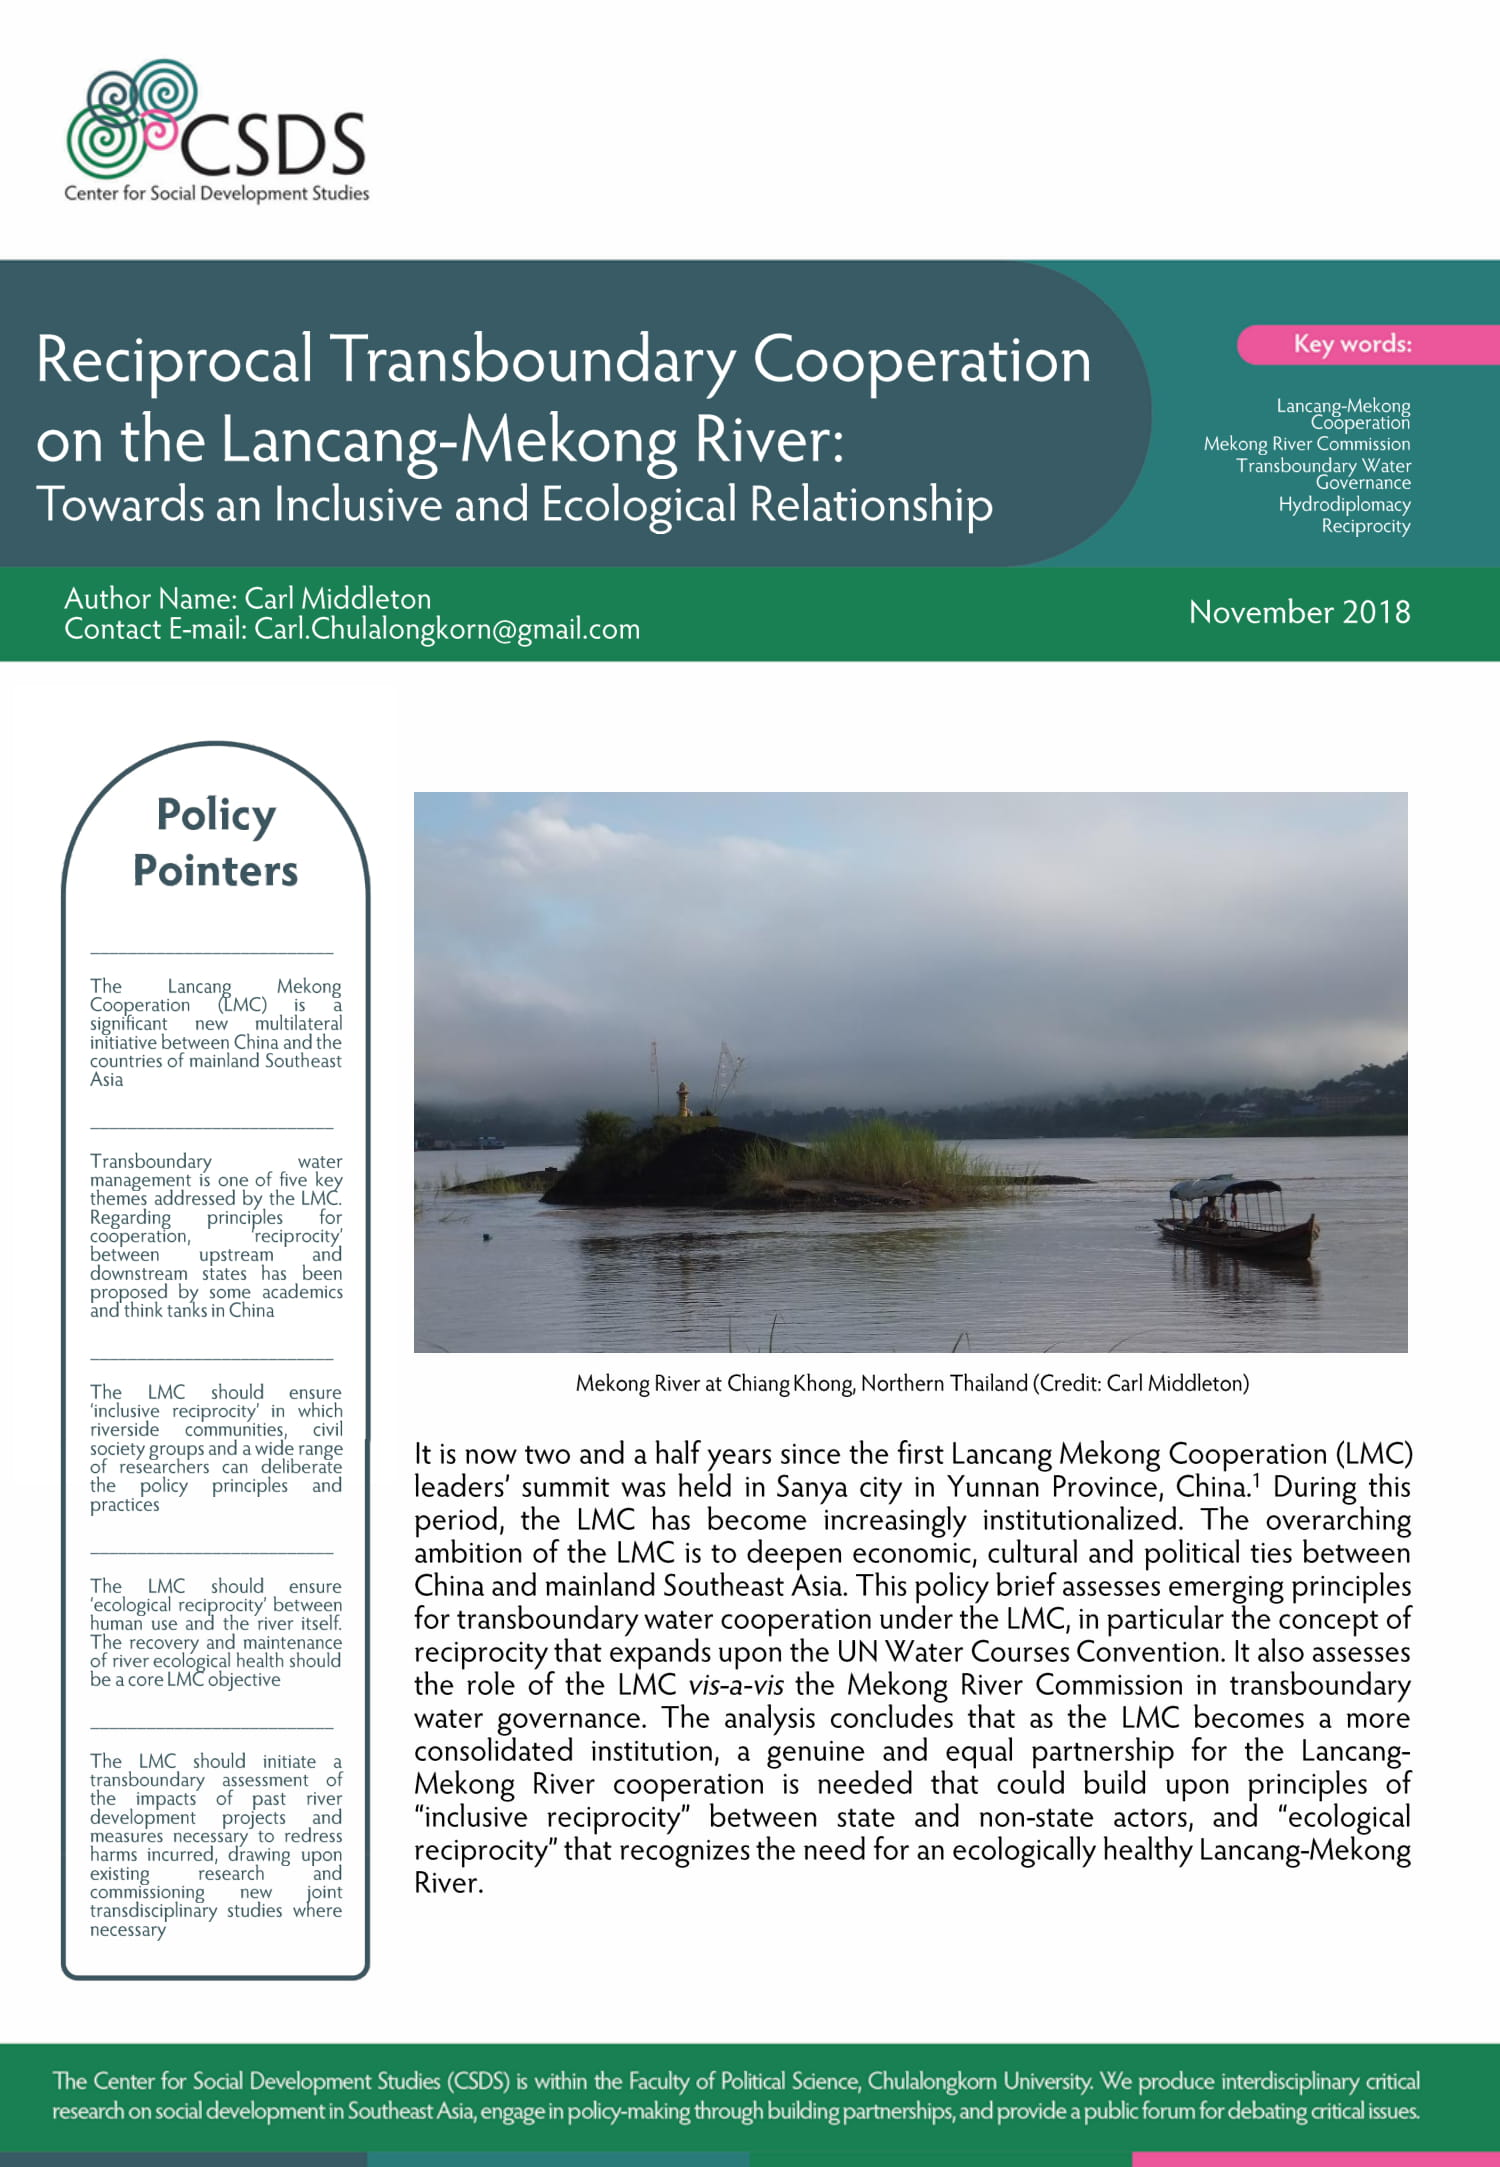 Lancang Mekong Cooperation Policy Brief Nov 2018-1.jpg